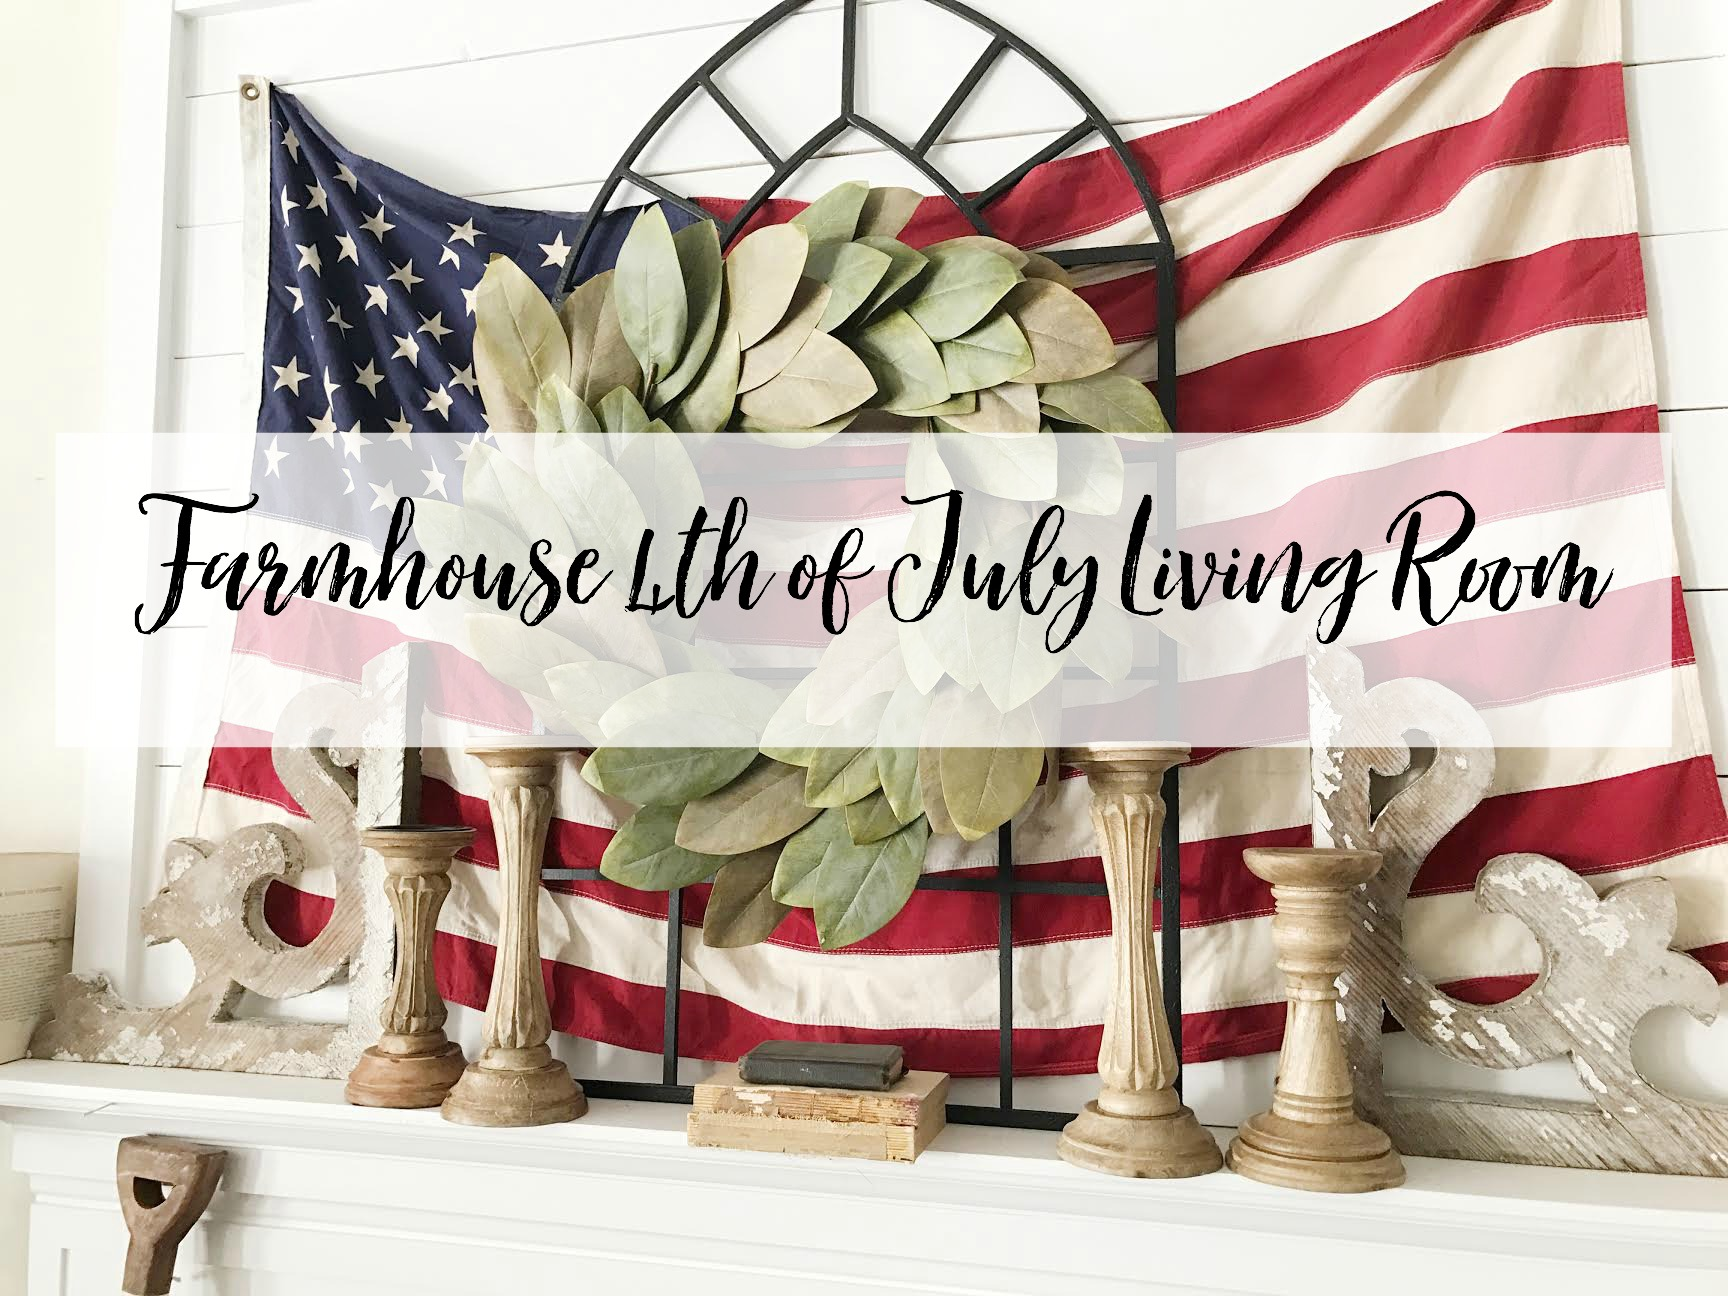 Farmhouse 4th of July Living Room Decor- American Flag